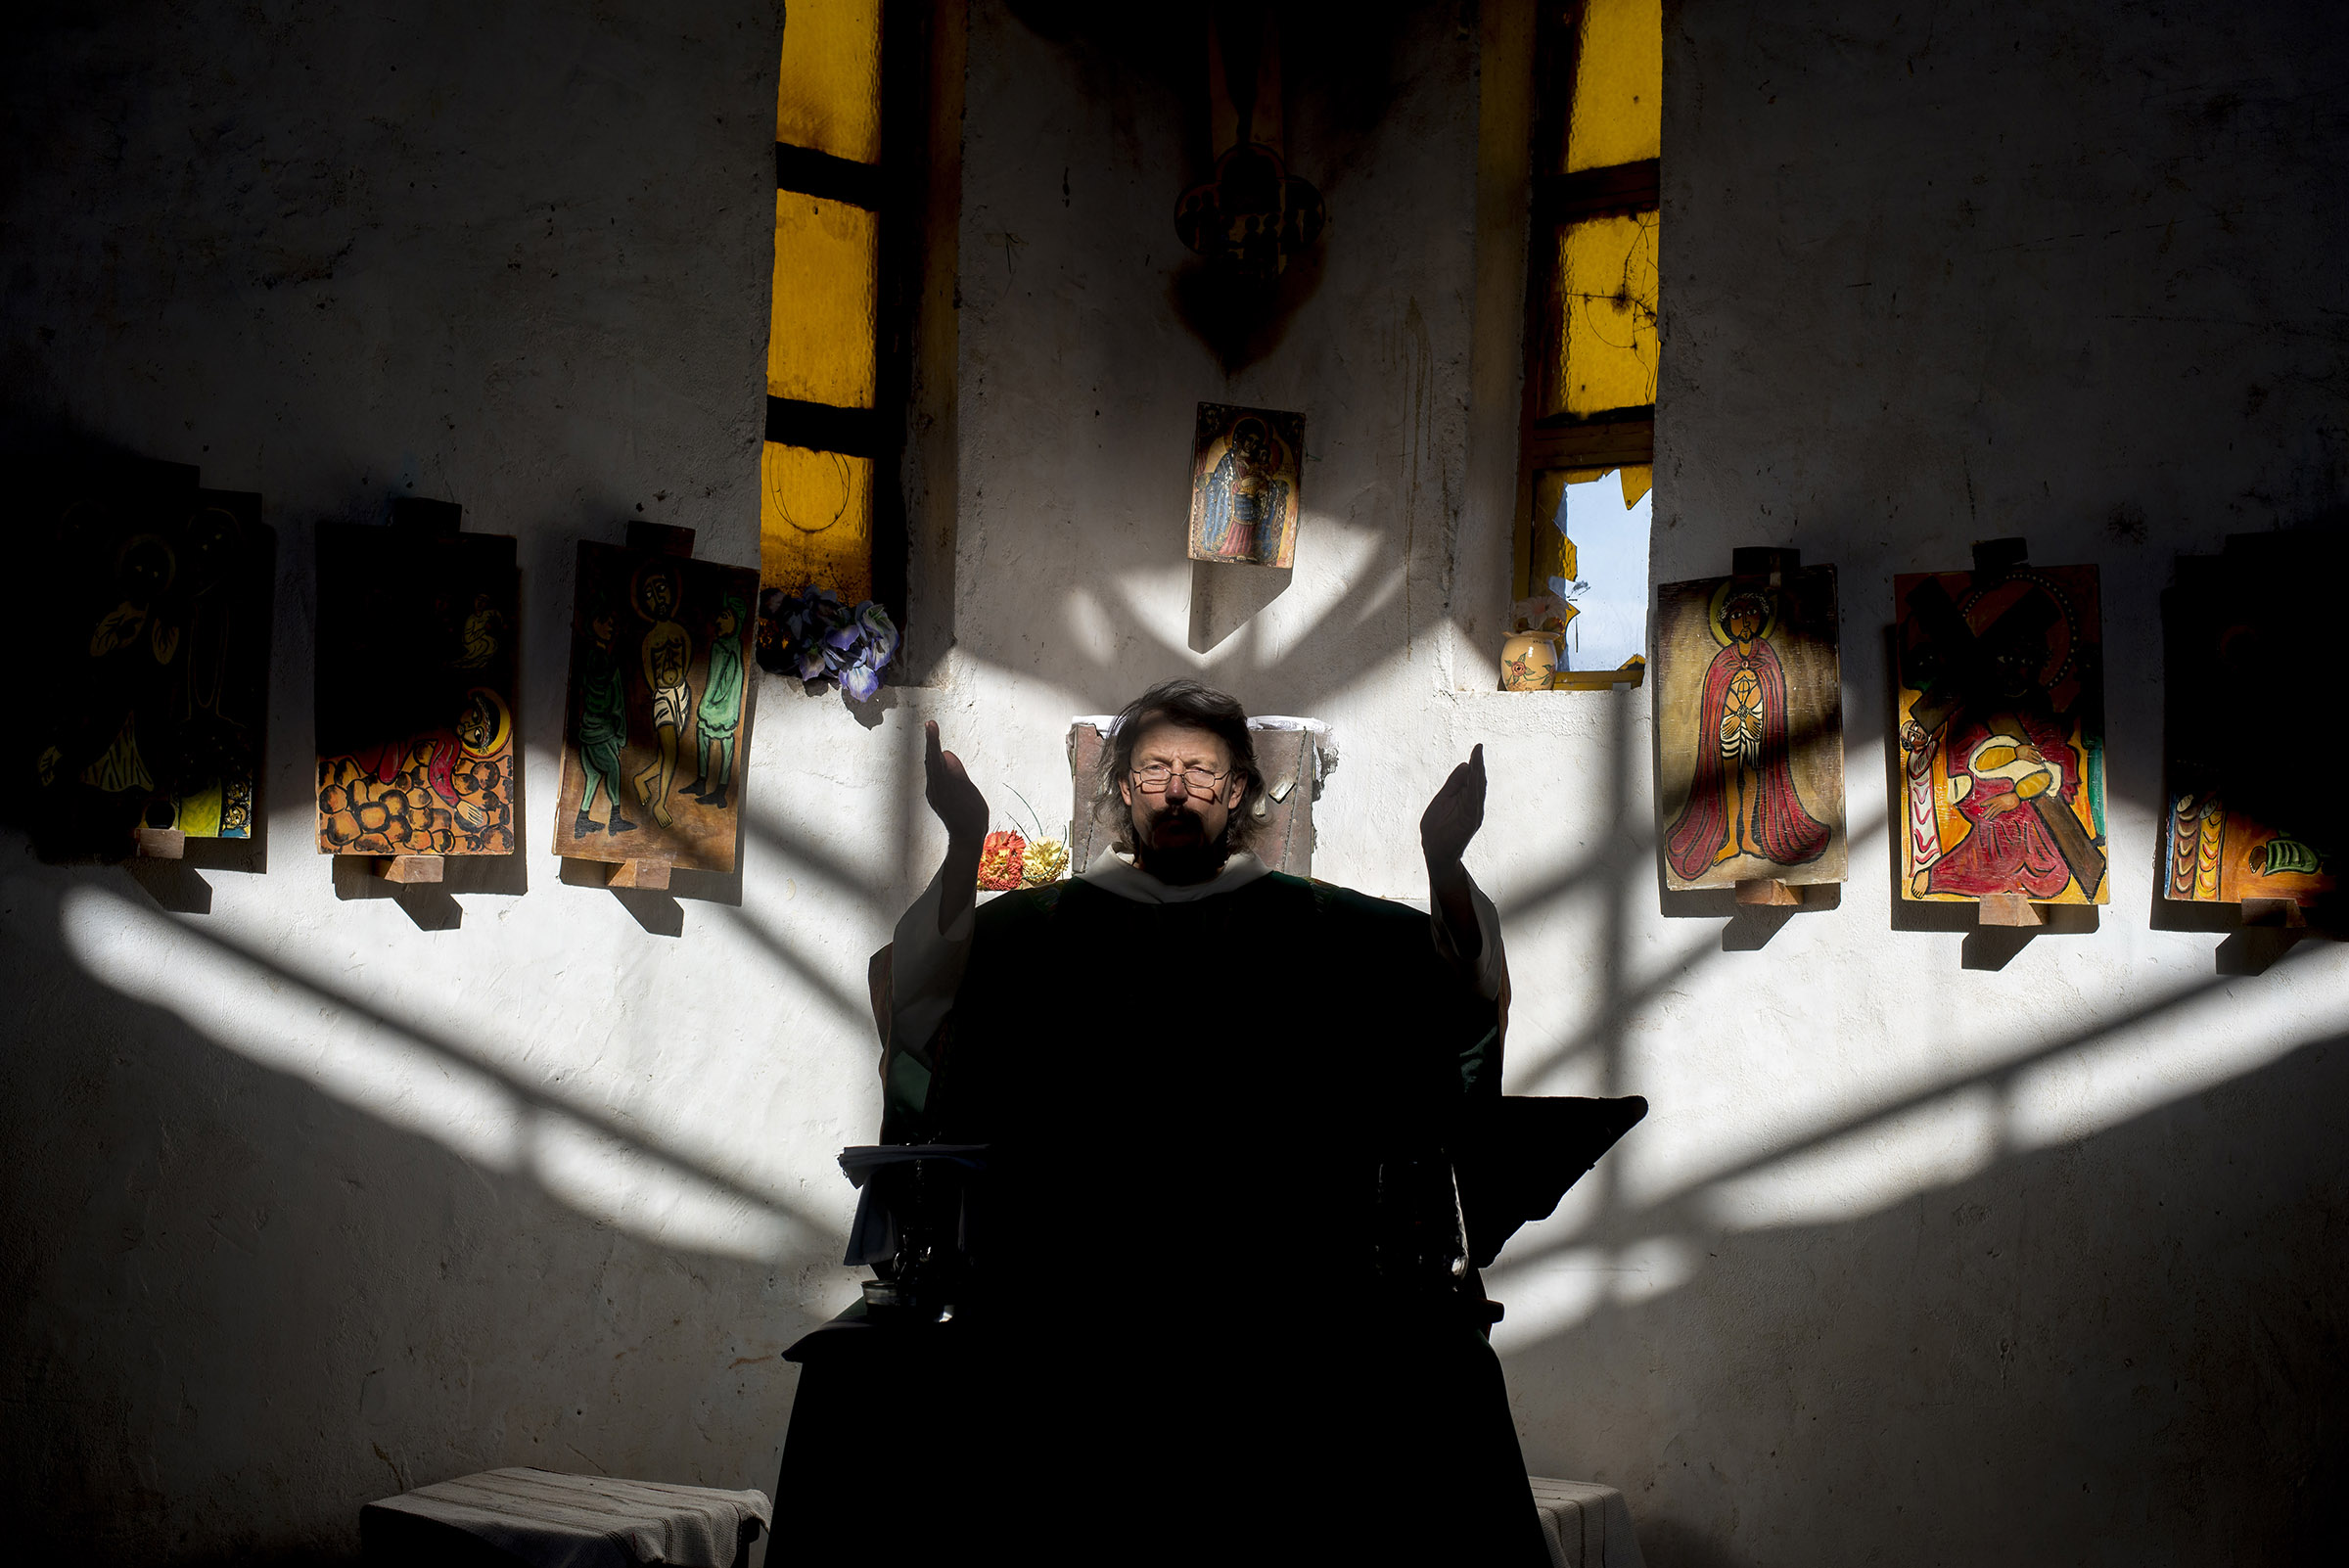 Father Florian, a Benedictine monk, leads an afternoon service in Illeret, Kenya. A Bavarian prince, he has lived in Kenya for over 20 years and has been working in Illeret with the Daasanach, a semi-nomadic tribe, for more than a decade. (Christena Dowsett/The GroundTruth Project)